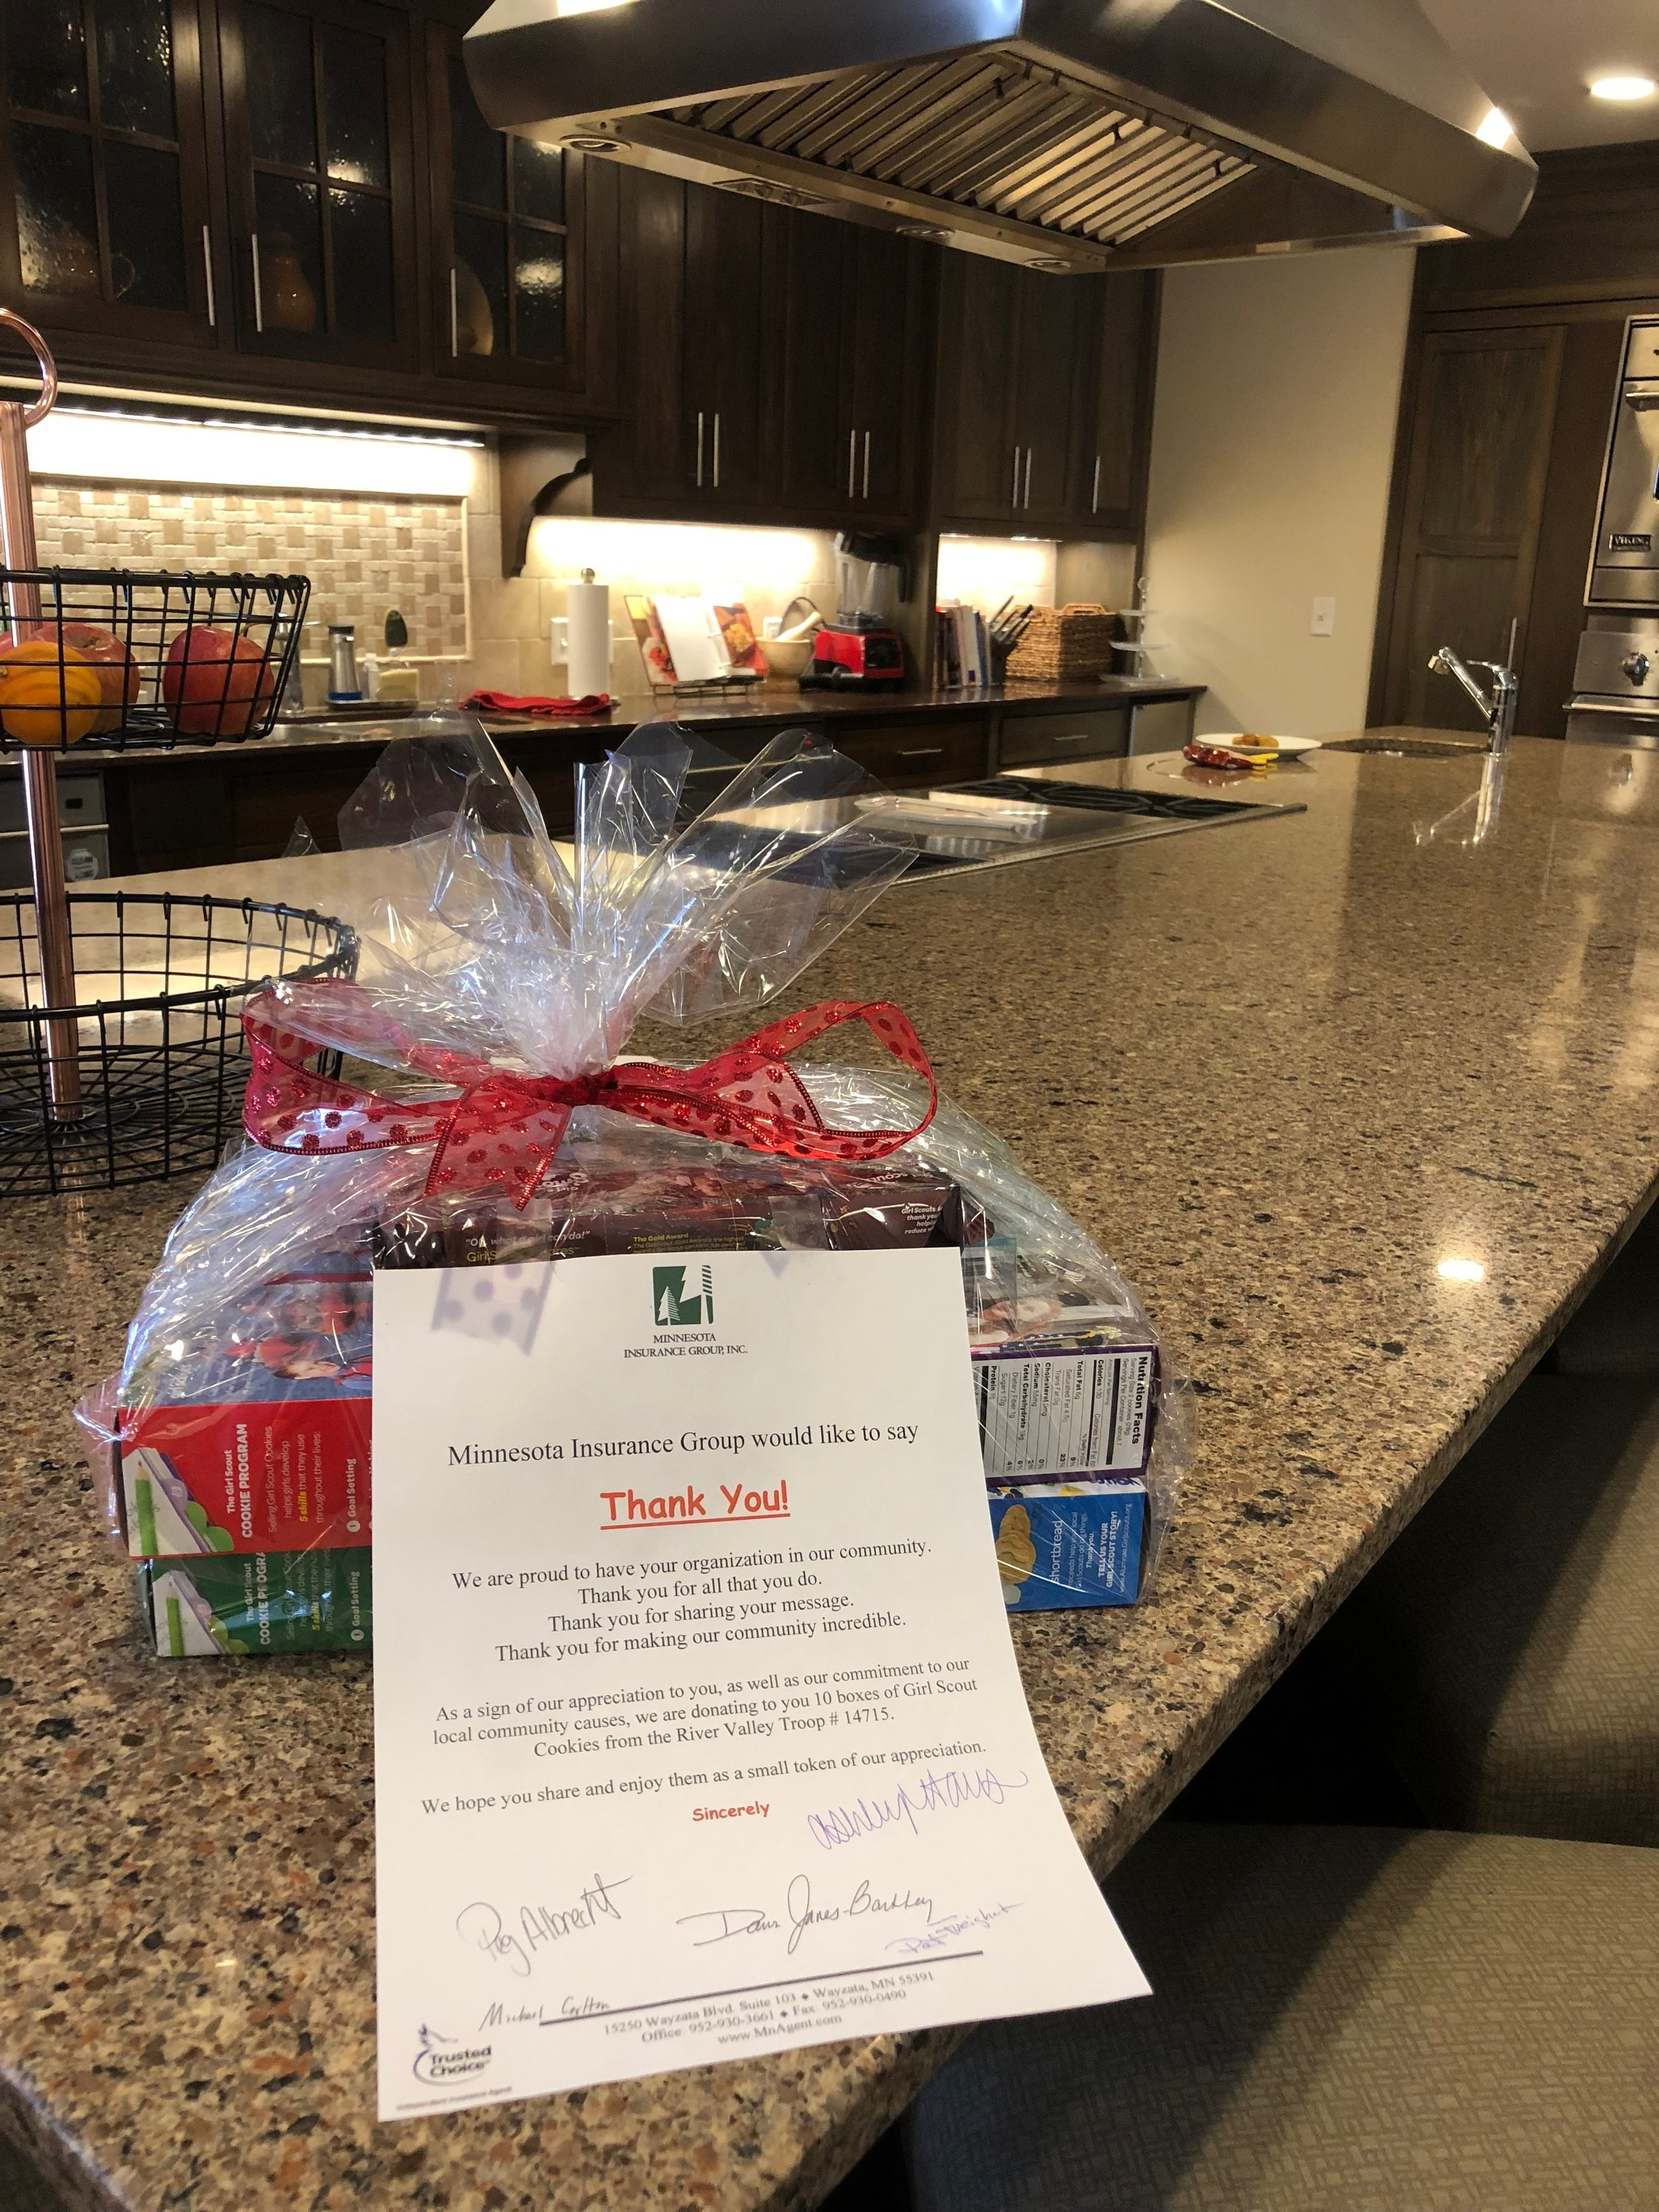 Donating Girl Scout cookies to Gilda's Clubhouse